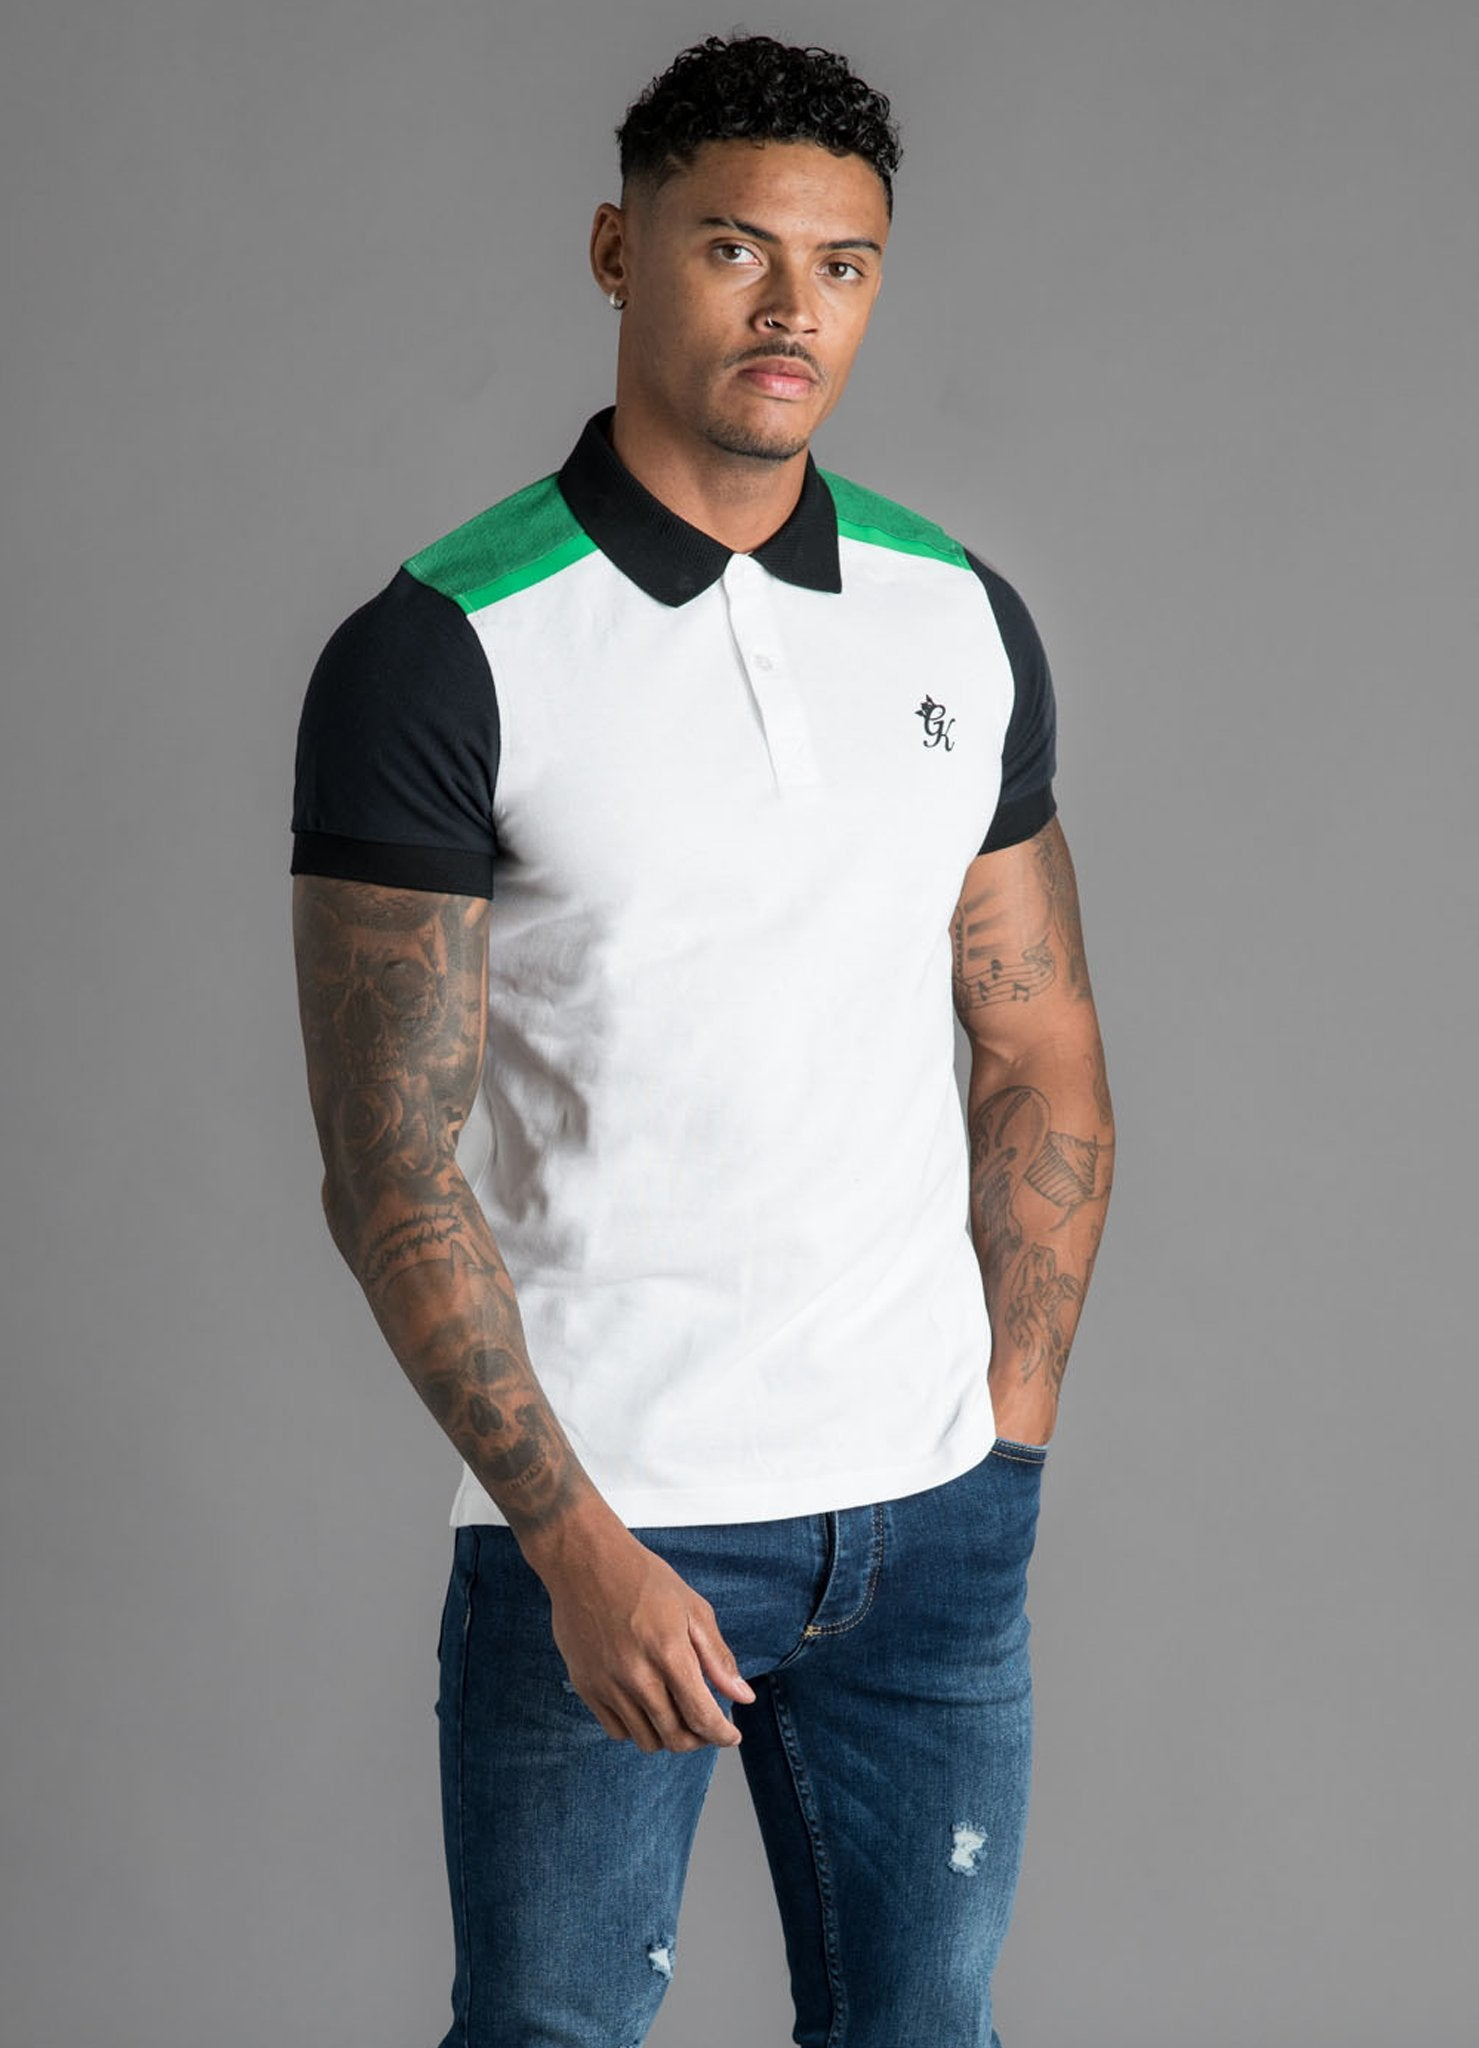 GK Rossi Shortsleeve Pique Polo - White/Black/Green